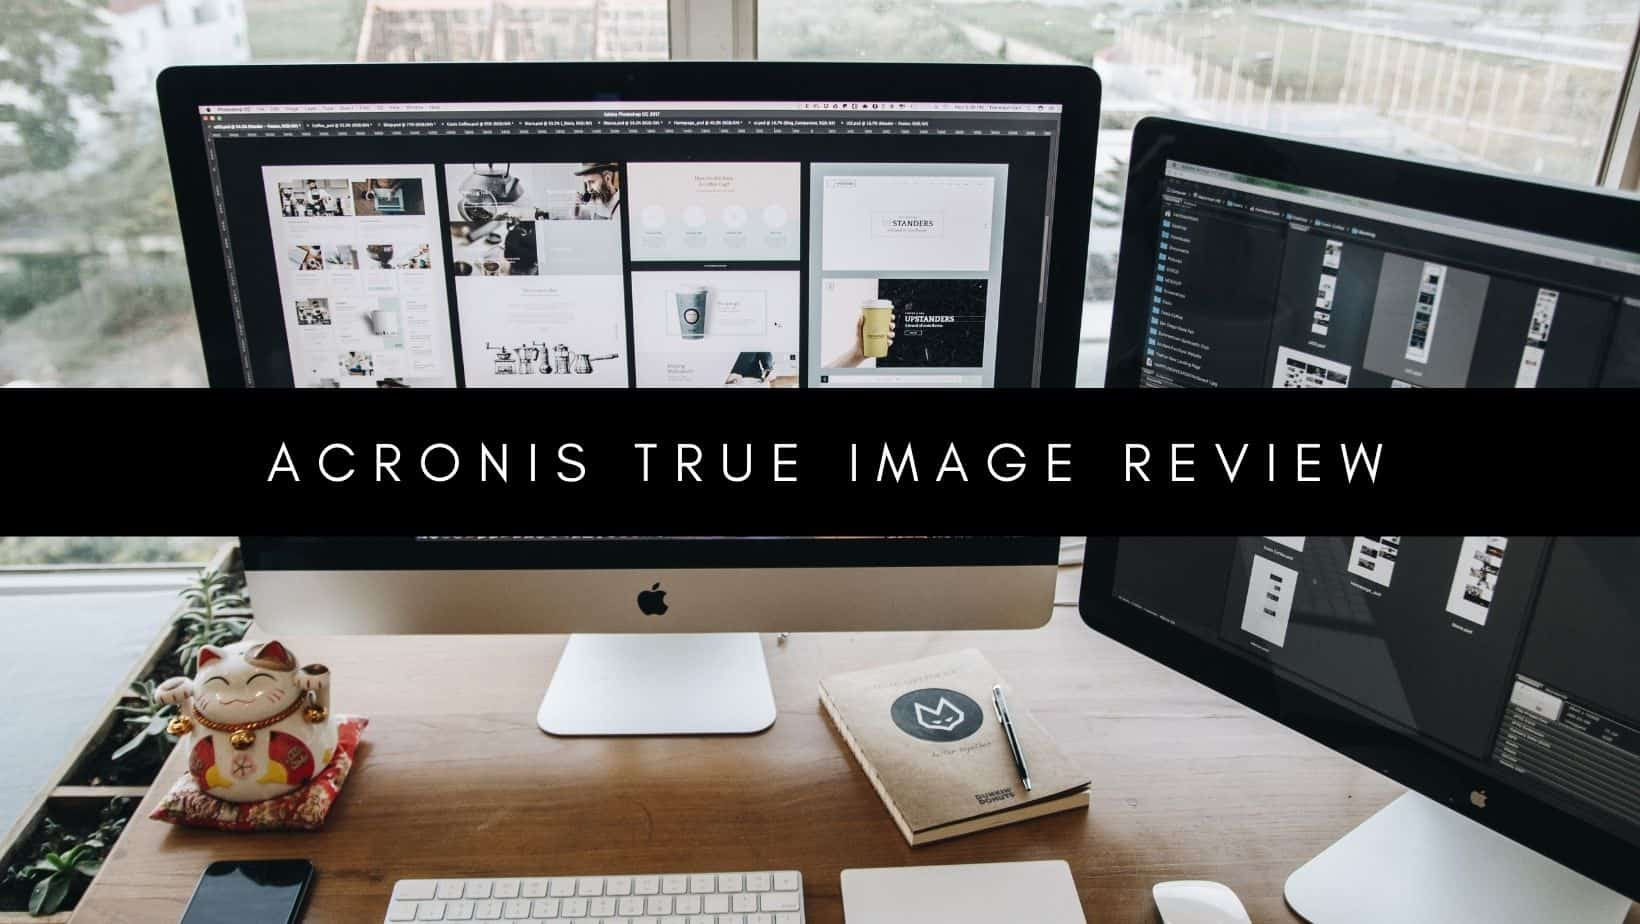 Acronis True Image Review